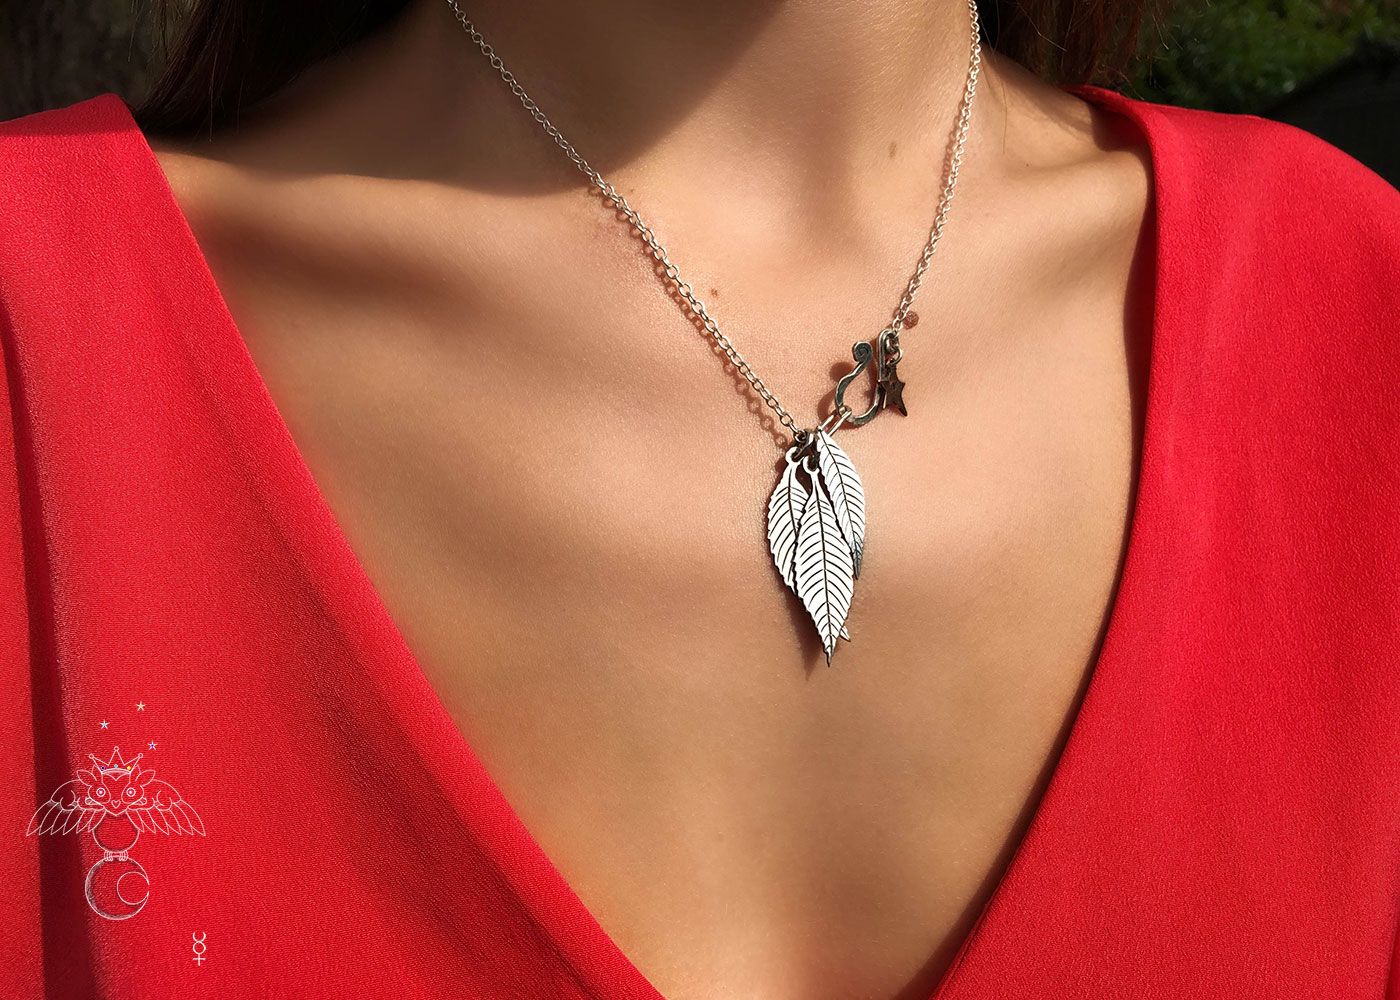 Ash tree leaves necklace - handcrafted and recycled ethical jewellery made from silver Victorian Florins.